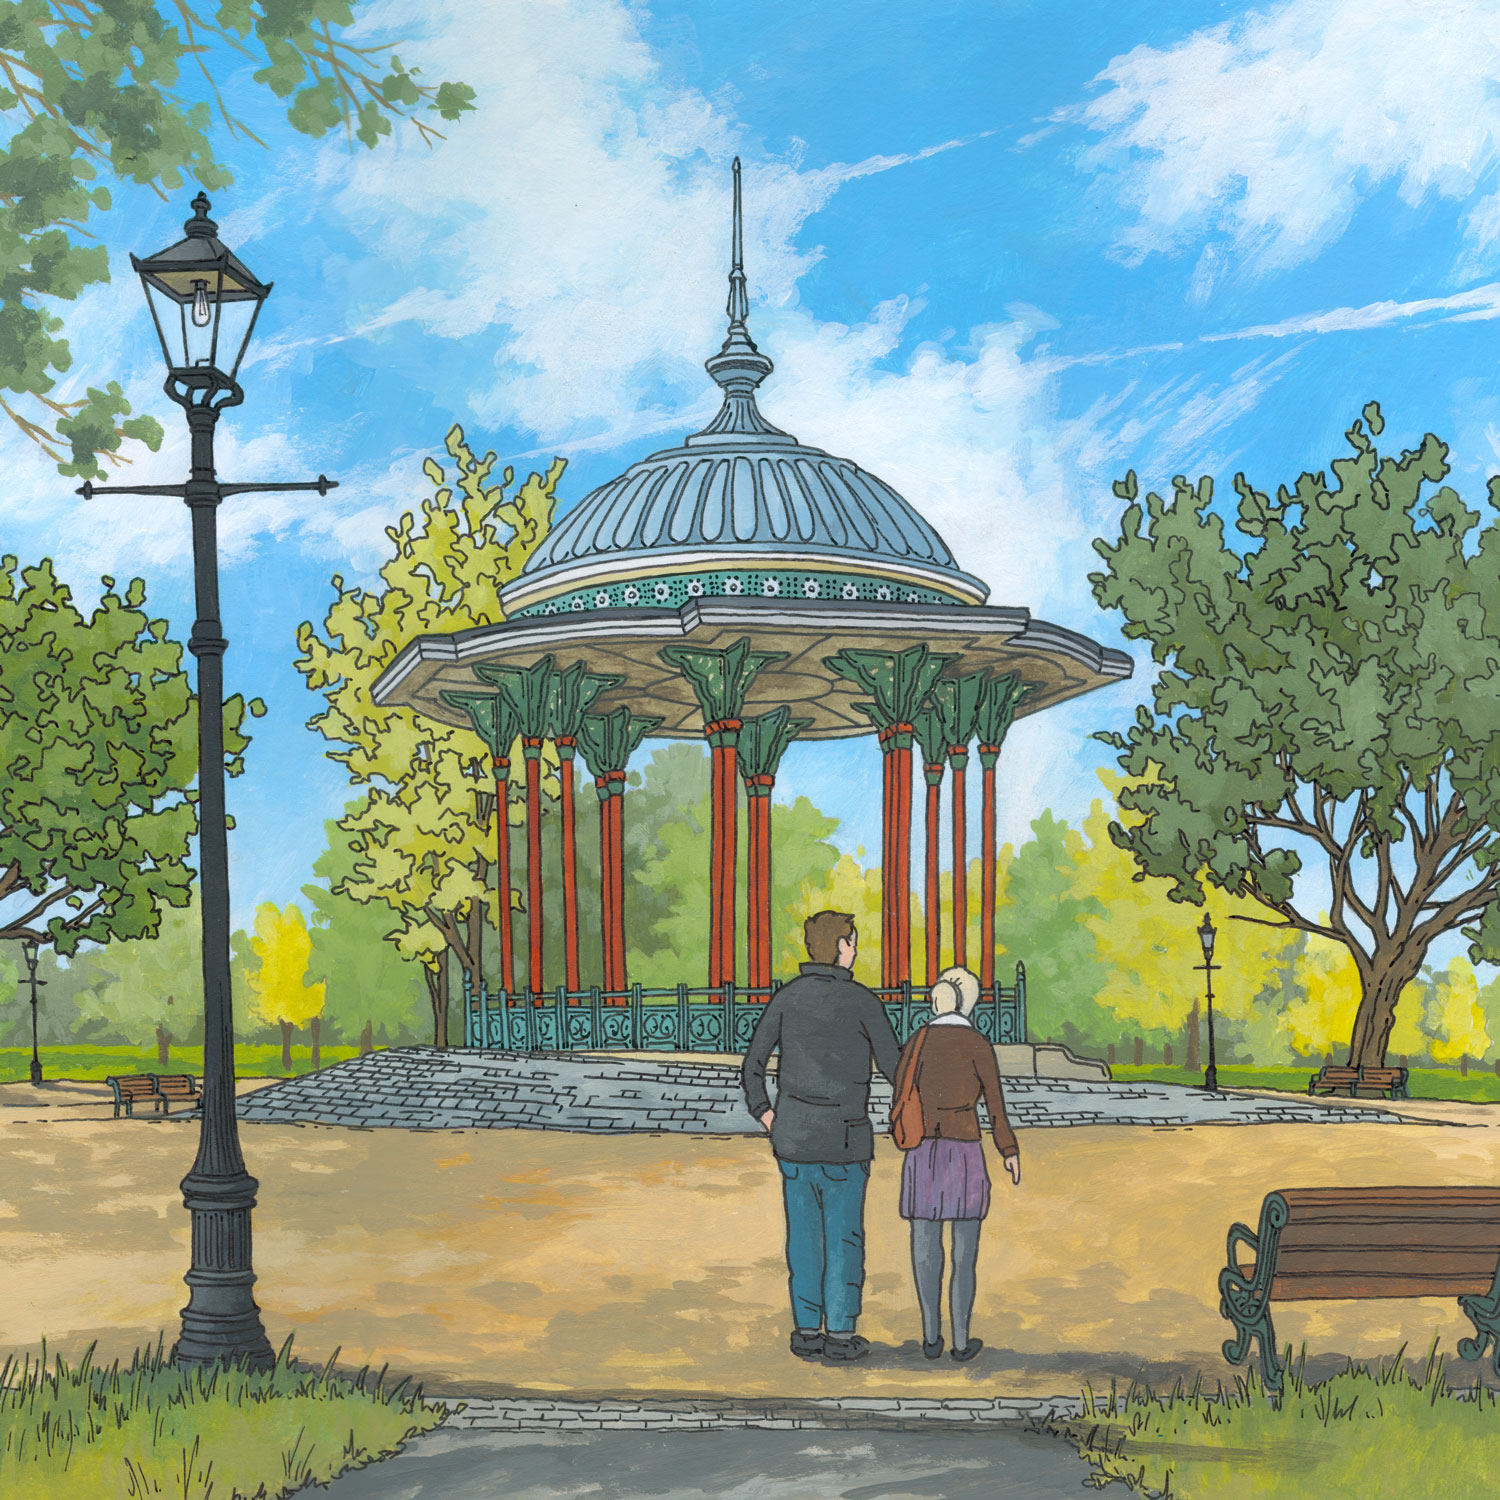 Clapham-Common-Bandstand